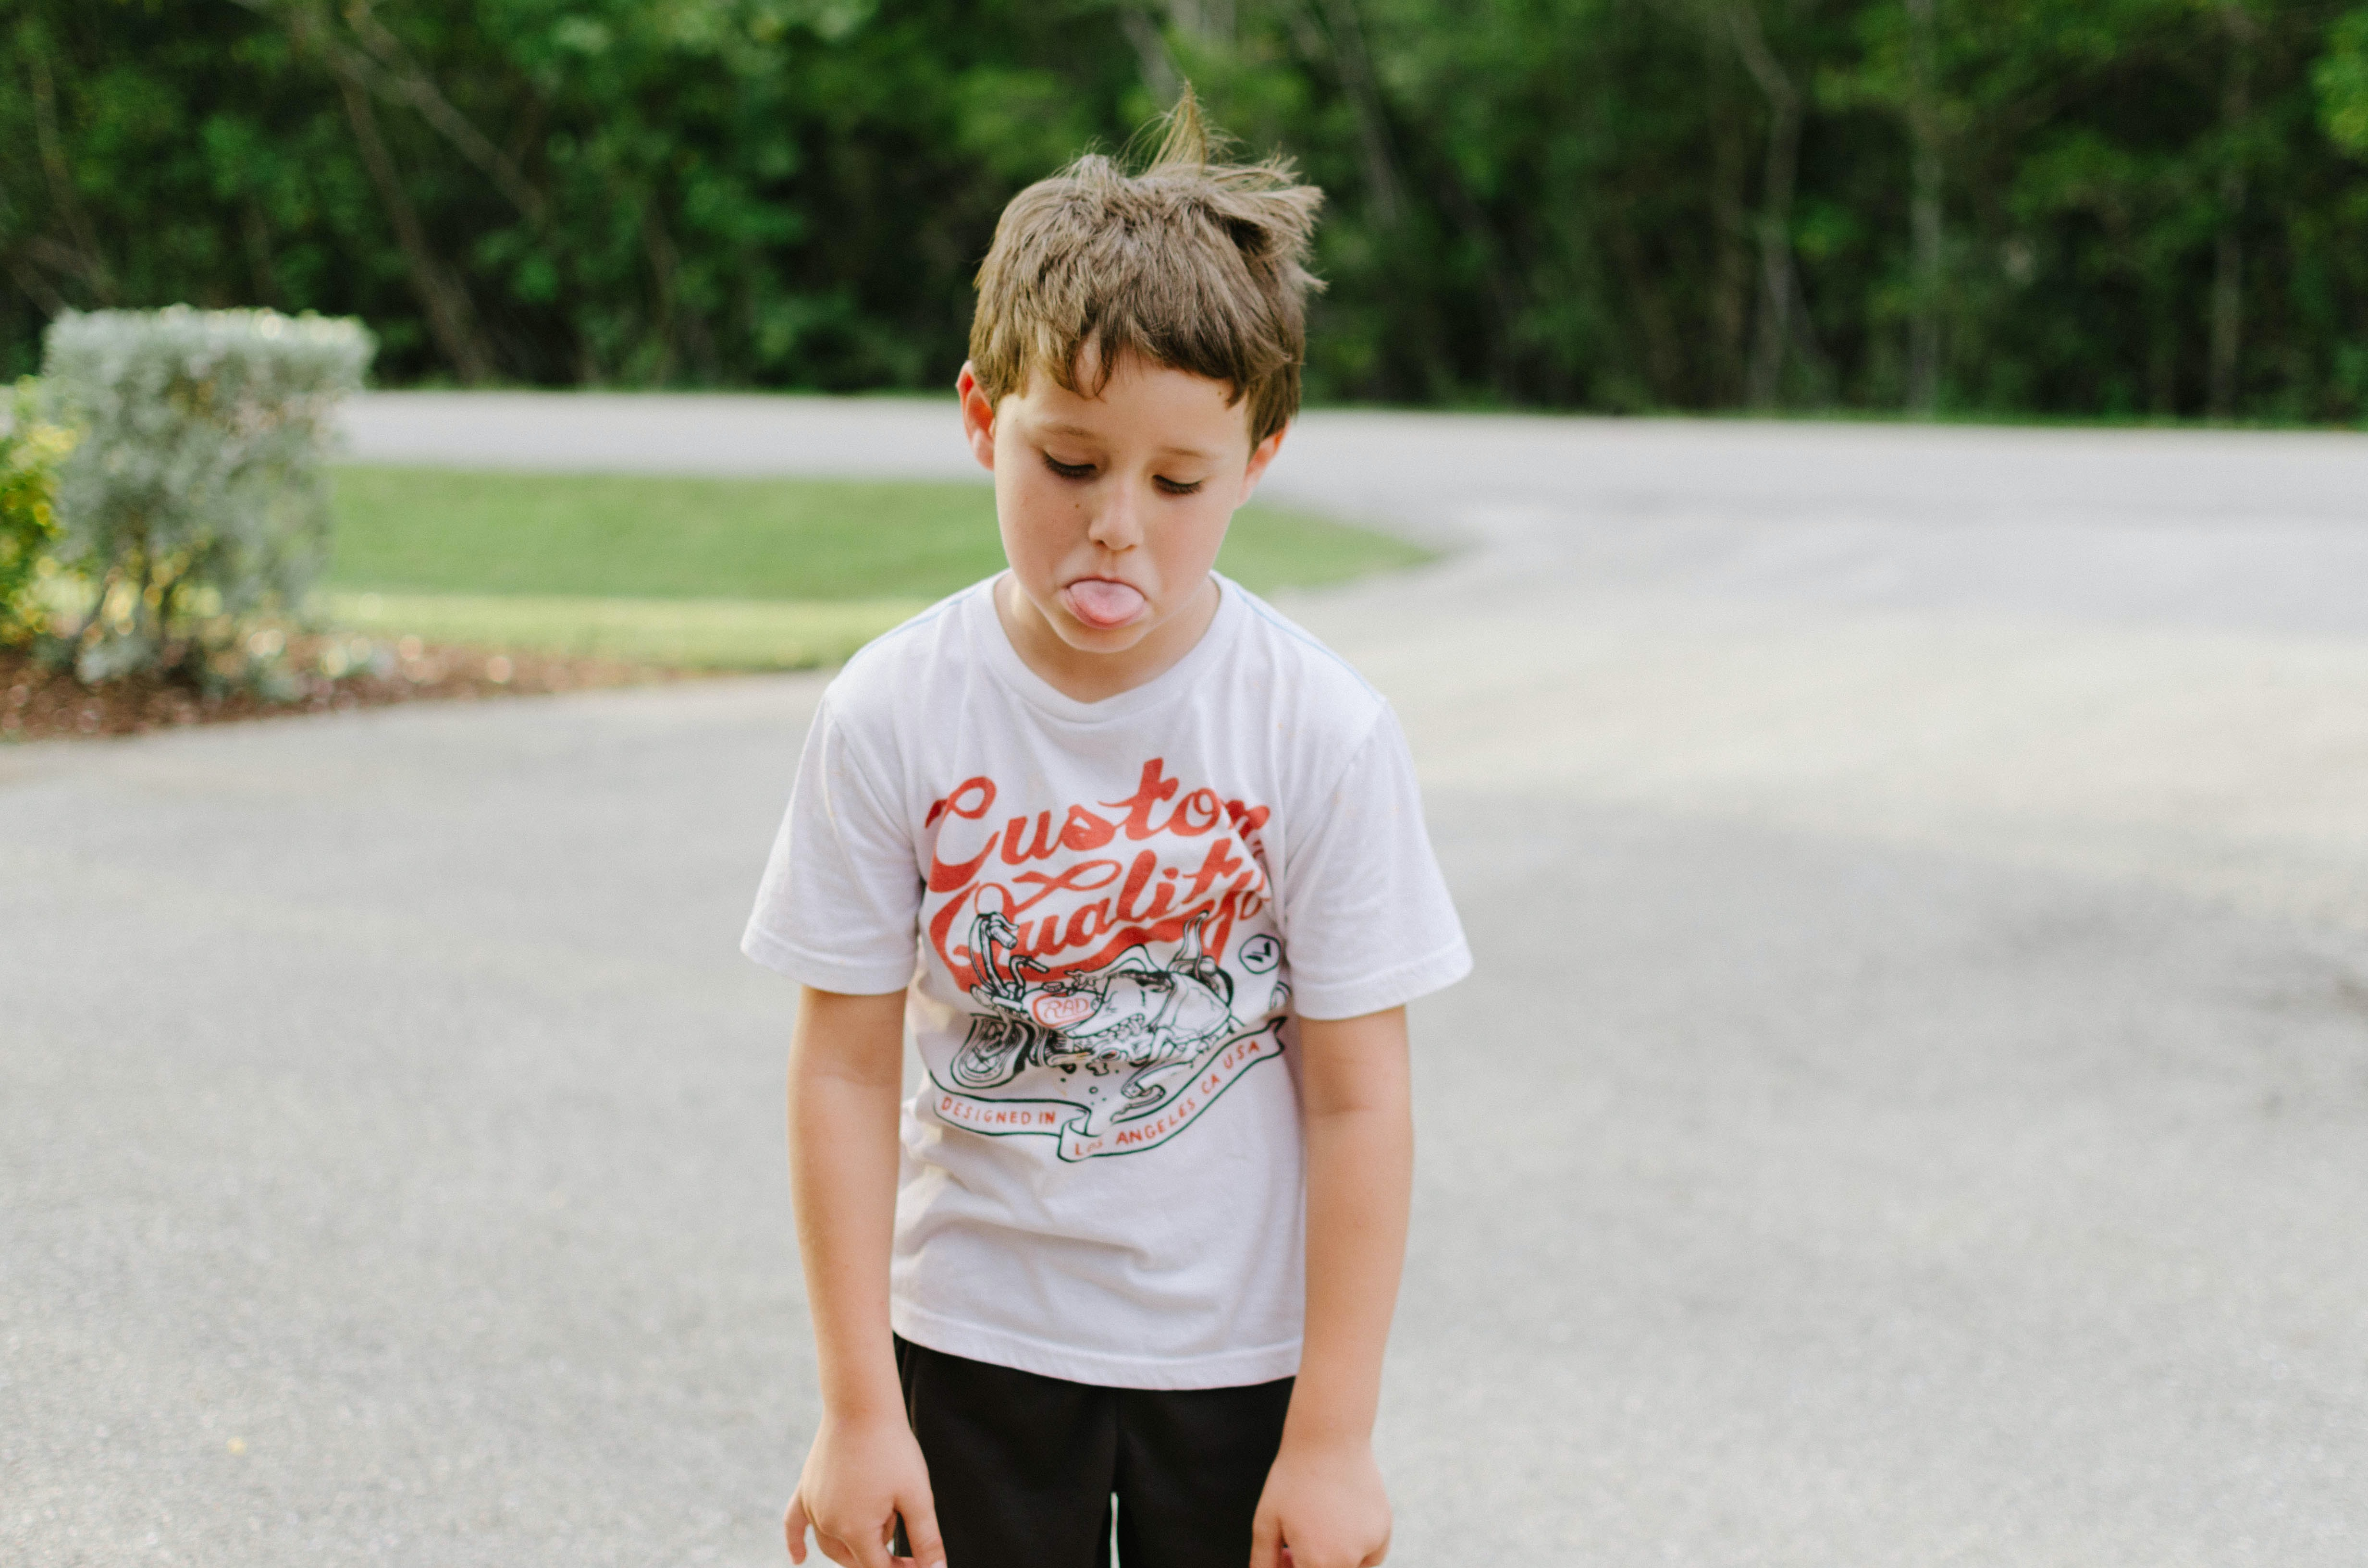 boy standing on gray concrete road while tongue out